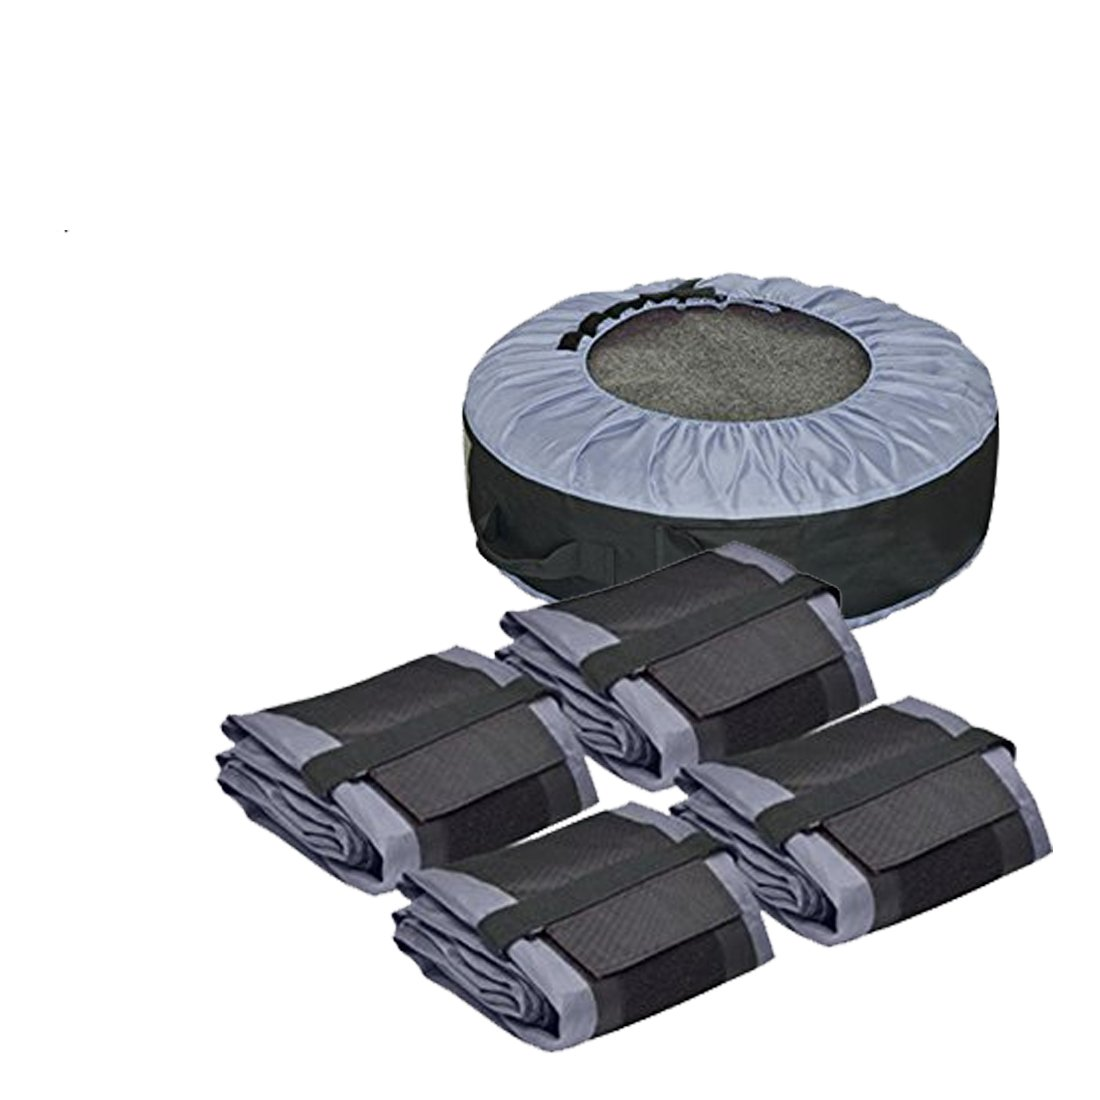 FLR Tire Tote Adjustable Waterproof Grey 30in Tire Covers Bags Seasonal Tire Storage Bag for Car Off Road Truck Tire Totes Set of 4 by FLR (Image #3)